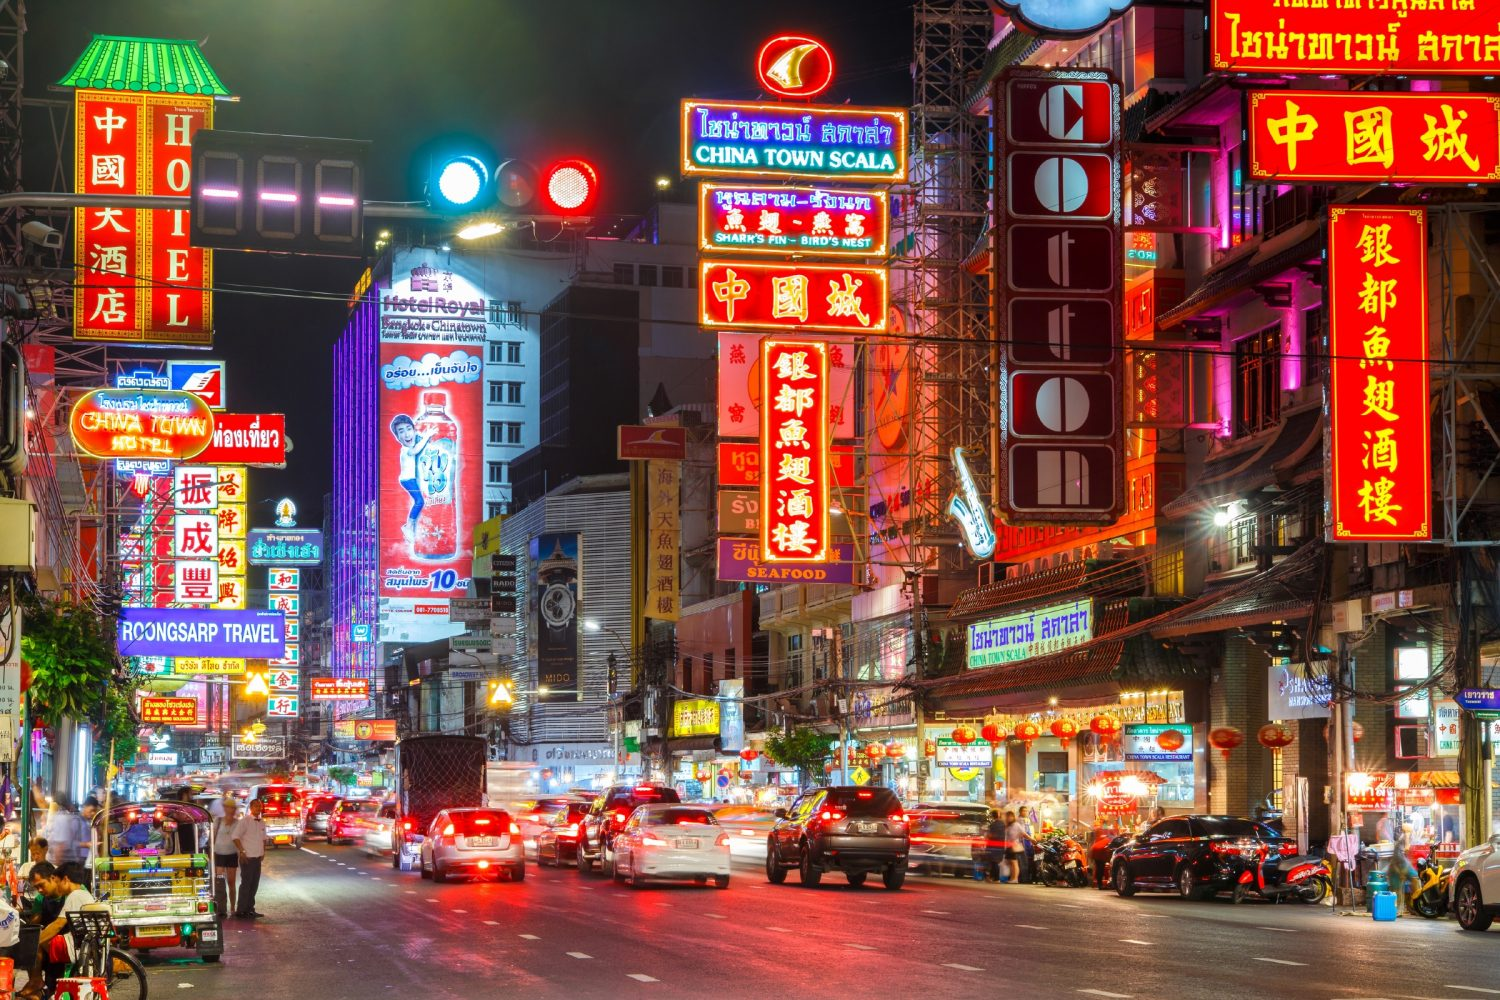 The Chinatown district of Bangkok at dusk. Image: K.Inspiration_06/Shutterstock